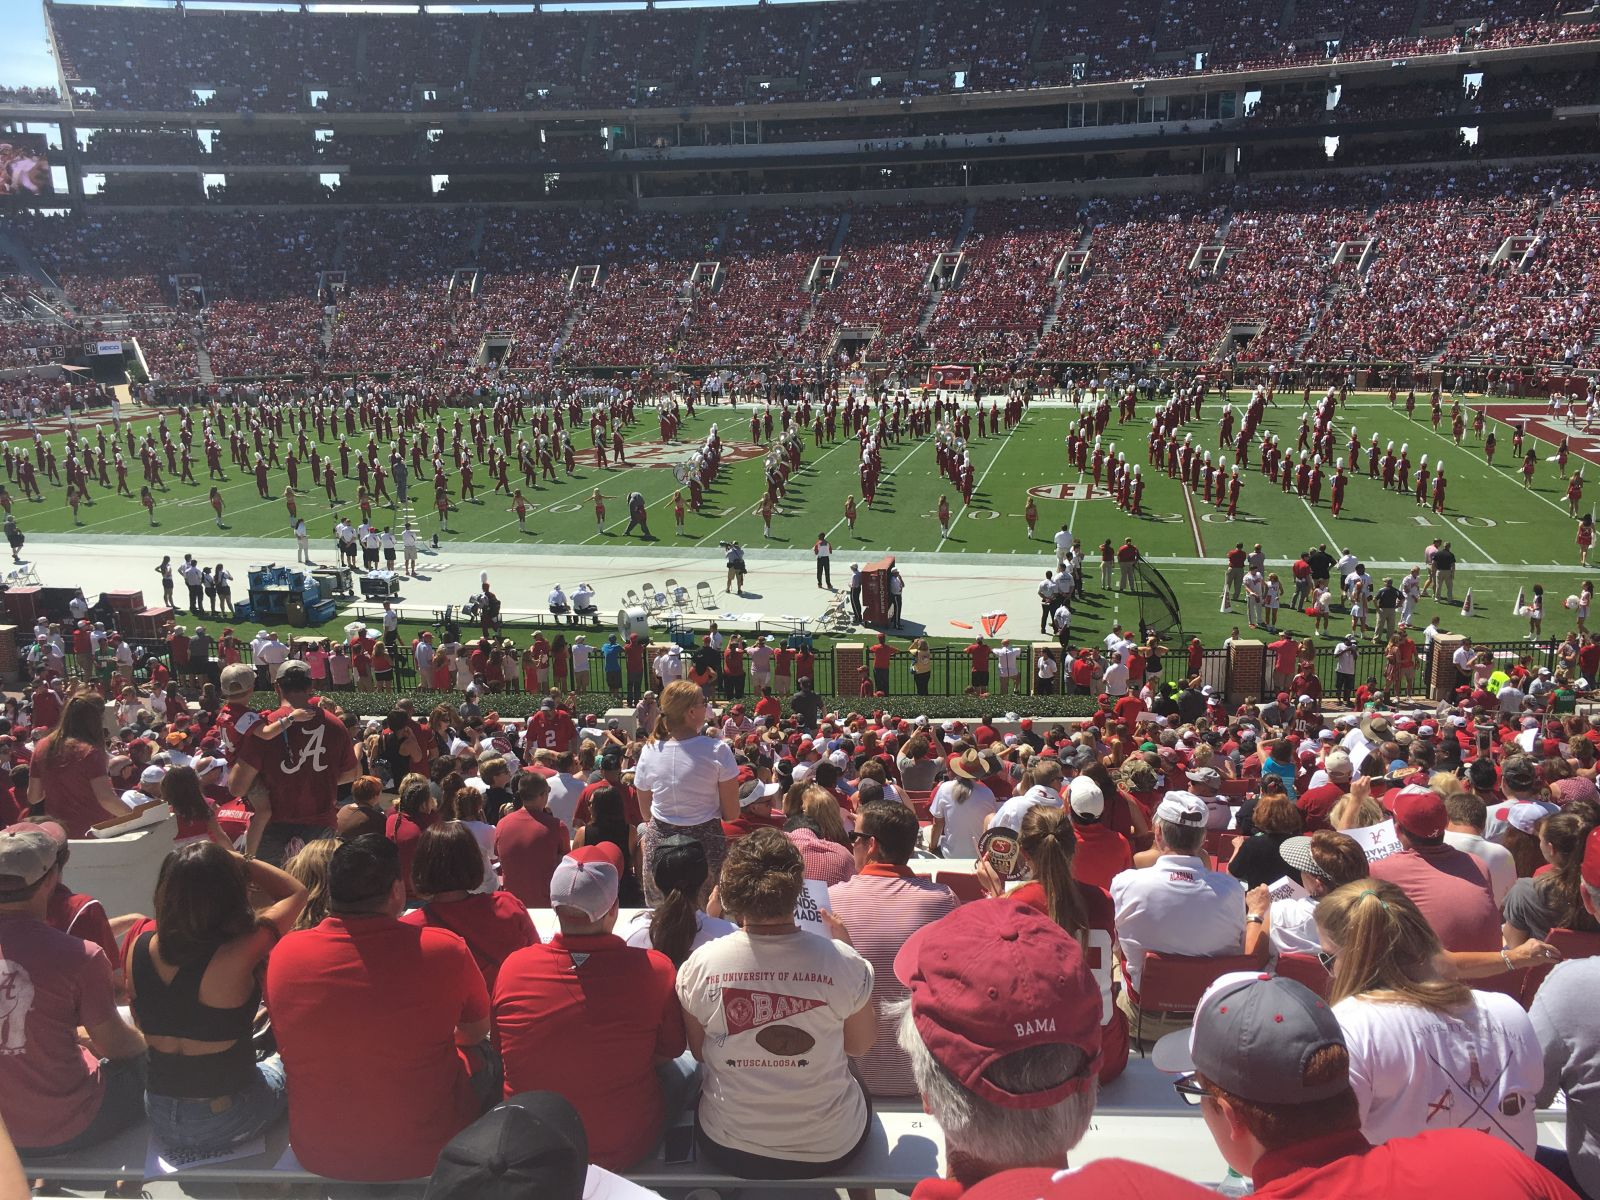 Seat View for Bryant-Denny Stadium Section JJ, Row 36, Seat 15